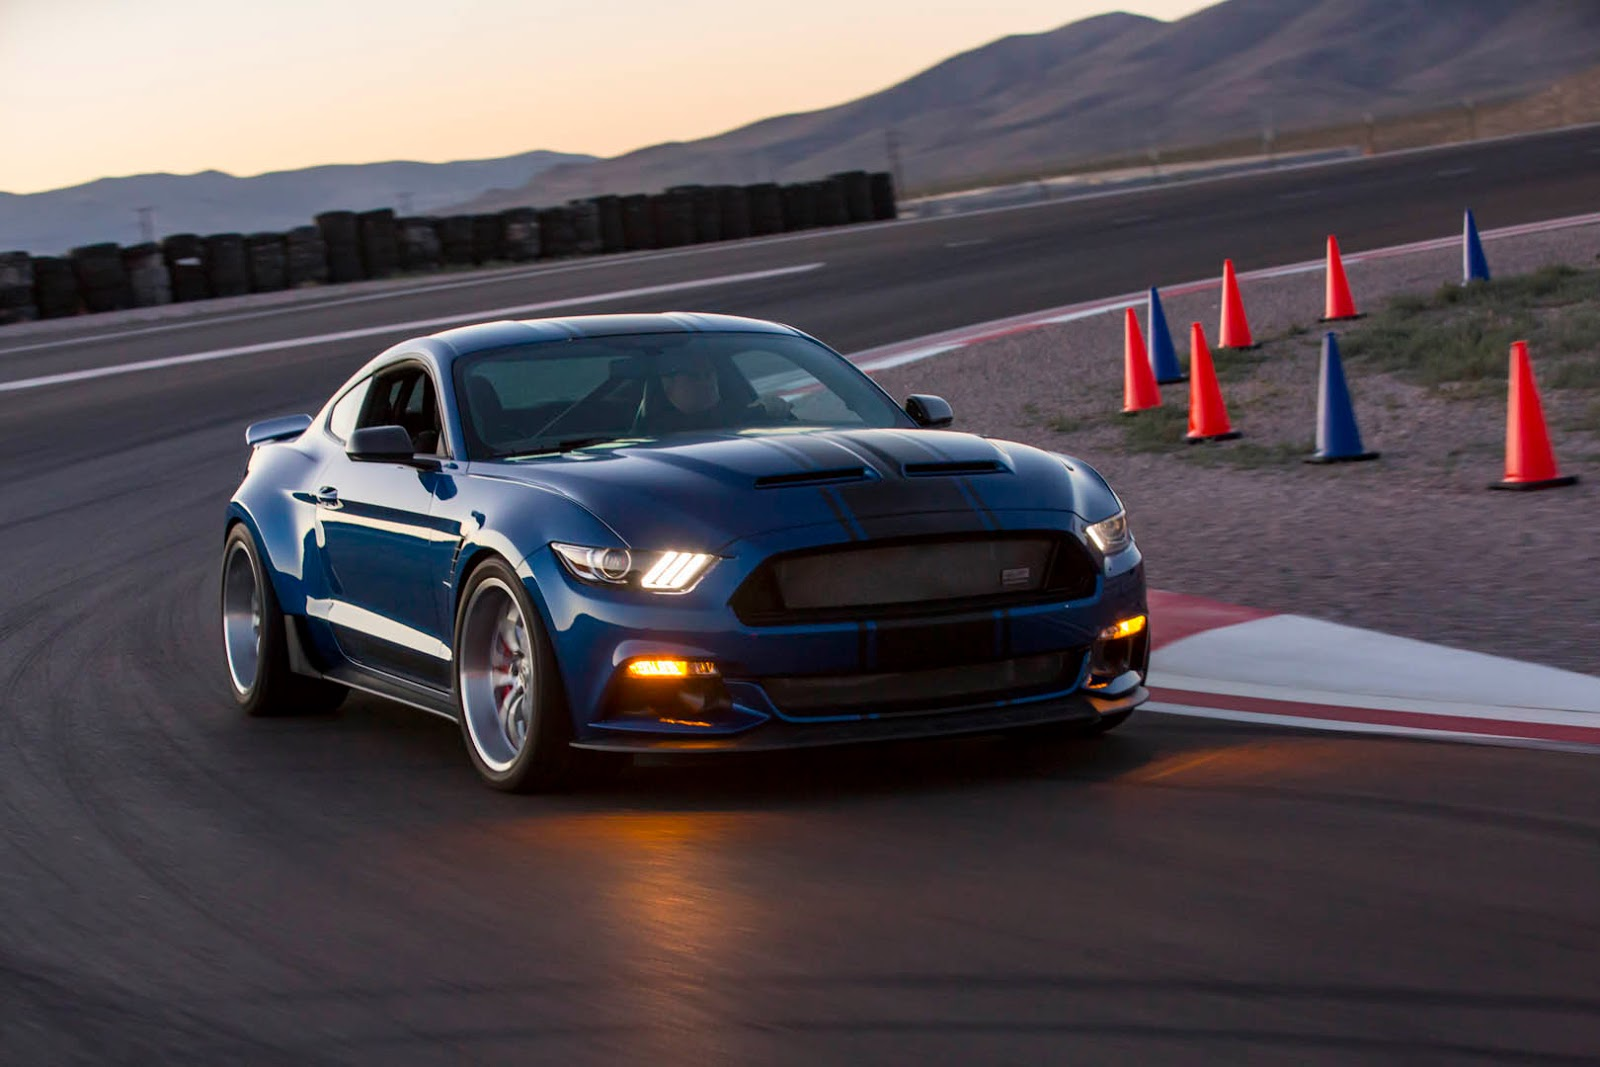 shelby lets loose with widebody 2017 super snake concept carscoops. Black Bedroom Furniture Sets. Home Design Ideas